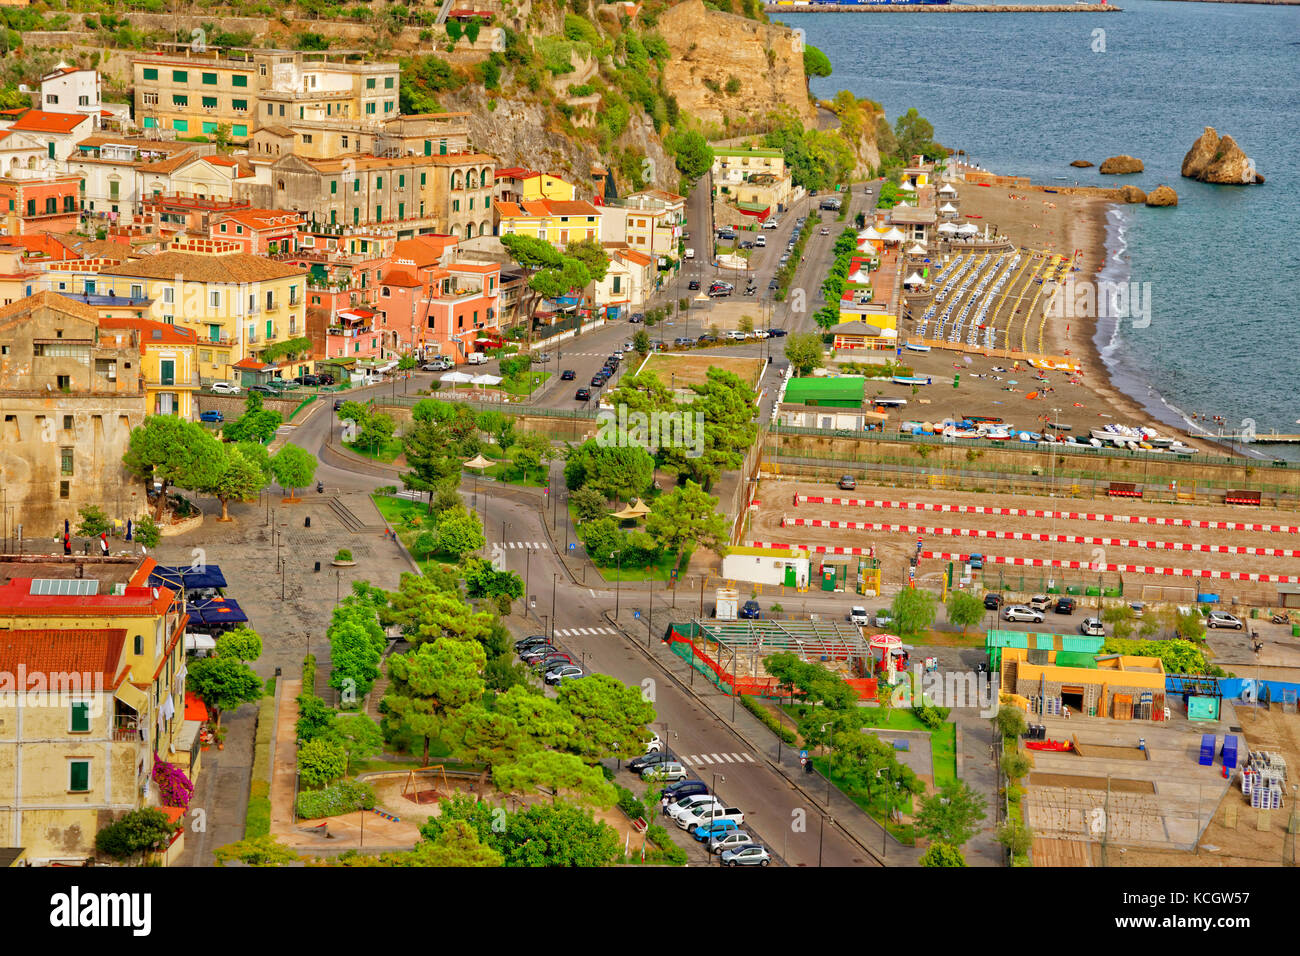 Vietri Sul Mare, Salerno, at the eastern end of the Amalfi Coast in southern Italy. - Stock Image